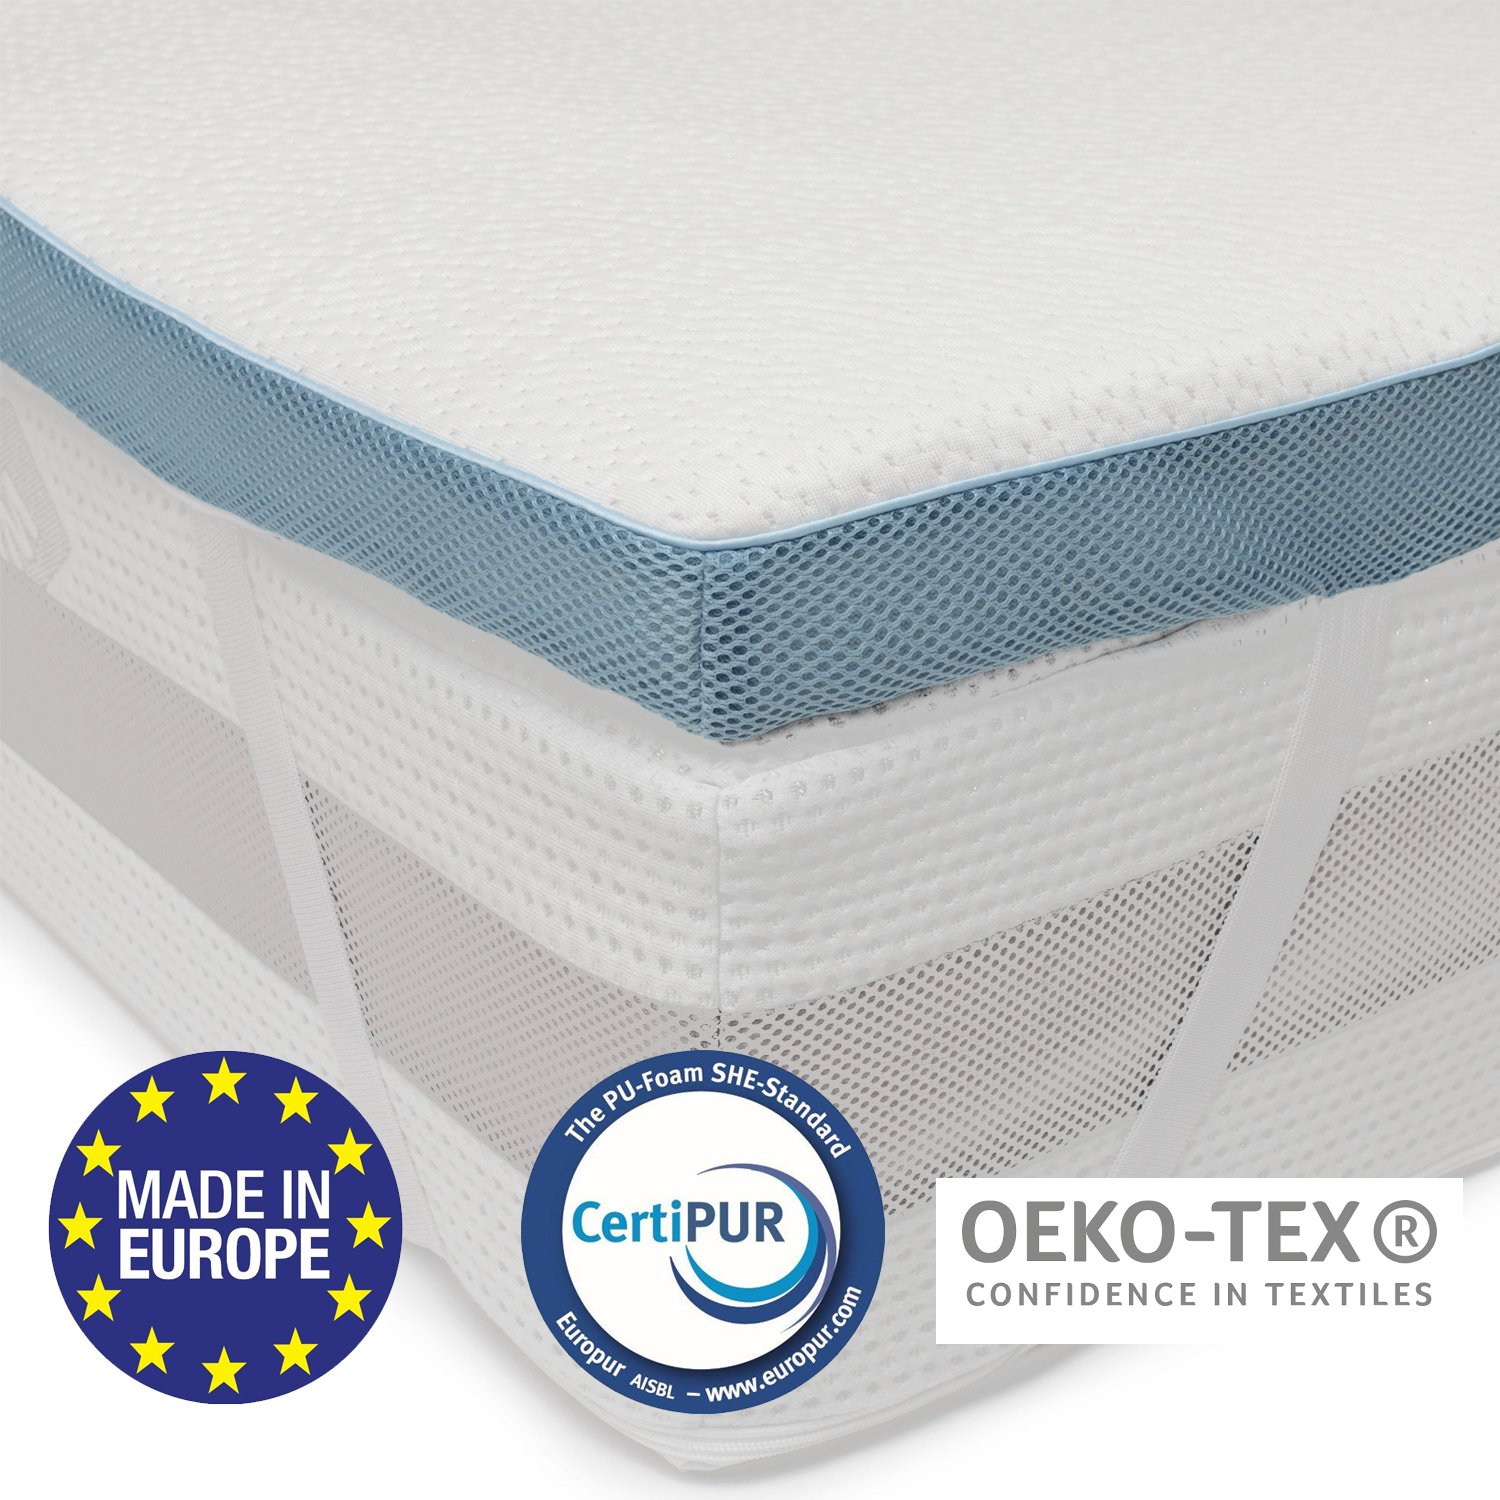 ⭐Orthopaedic Memory Foam Mattress Topper 90 x 190 cm (Single), 5cm (2 inch) - Chemical-Free and Made in Europe Memory Foam Mattress Toppers - Non-slip Material, 4 Elastics, Bamboo Cover with Zip BMS International